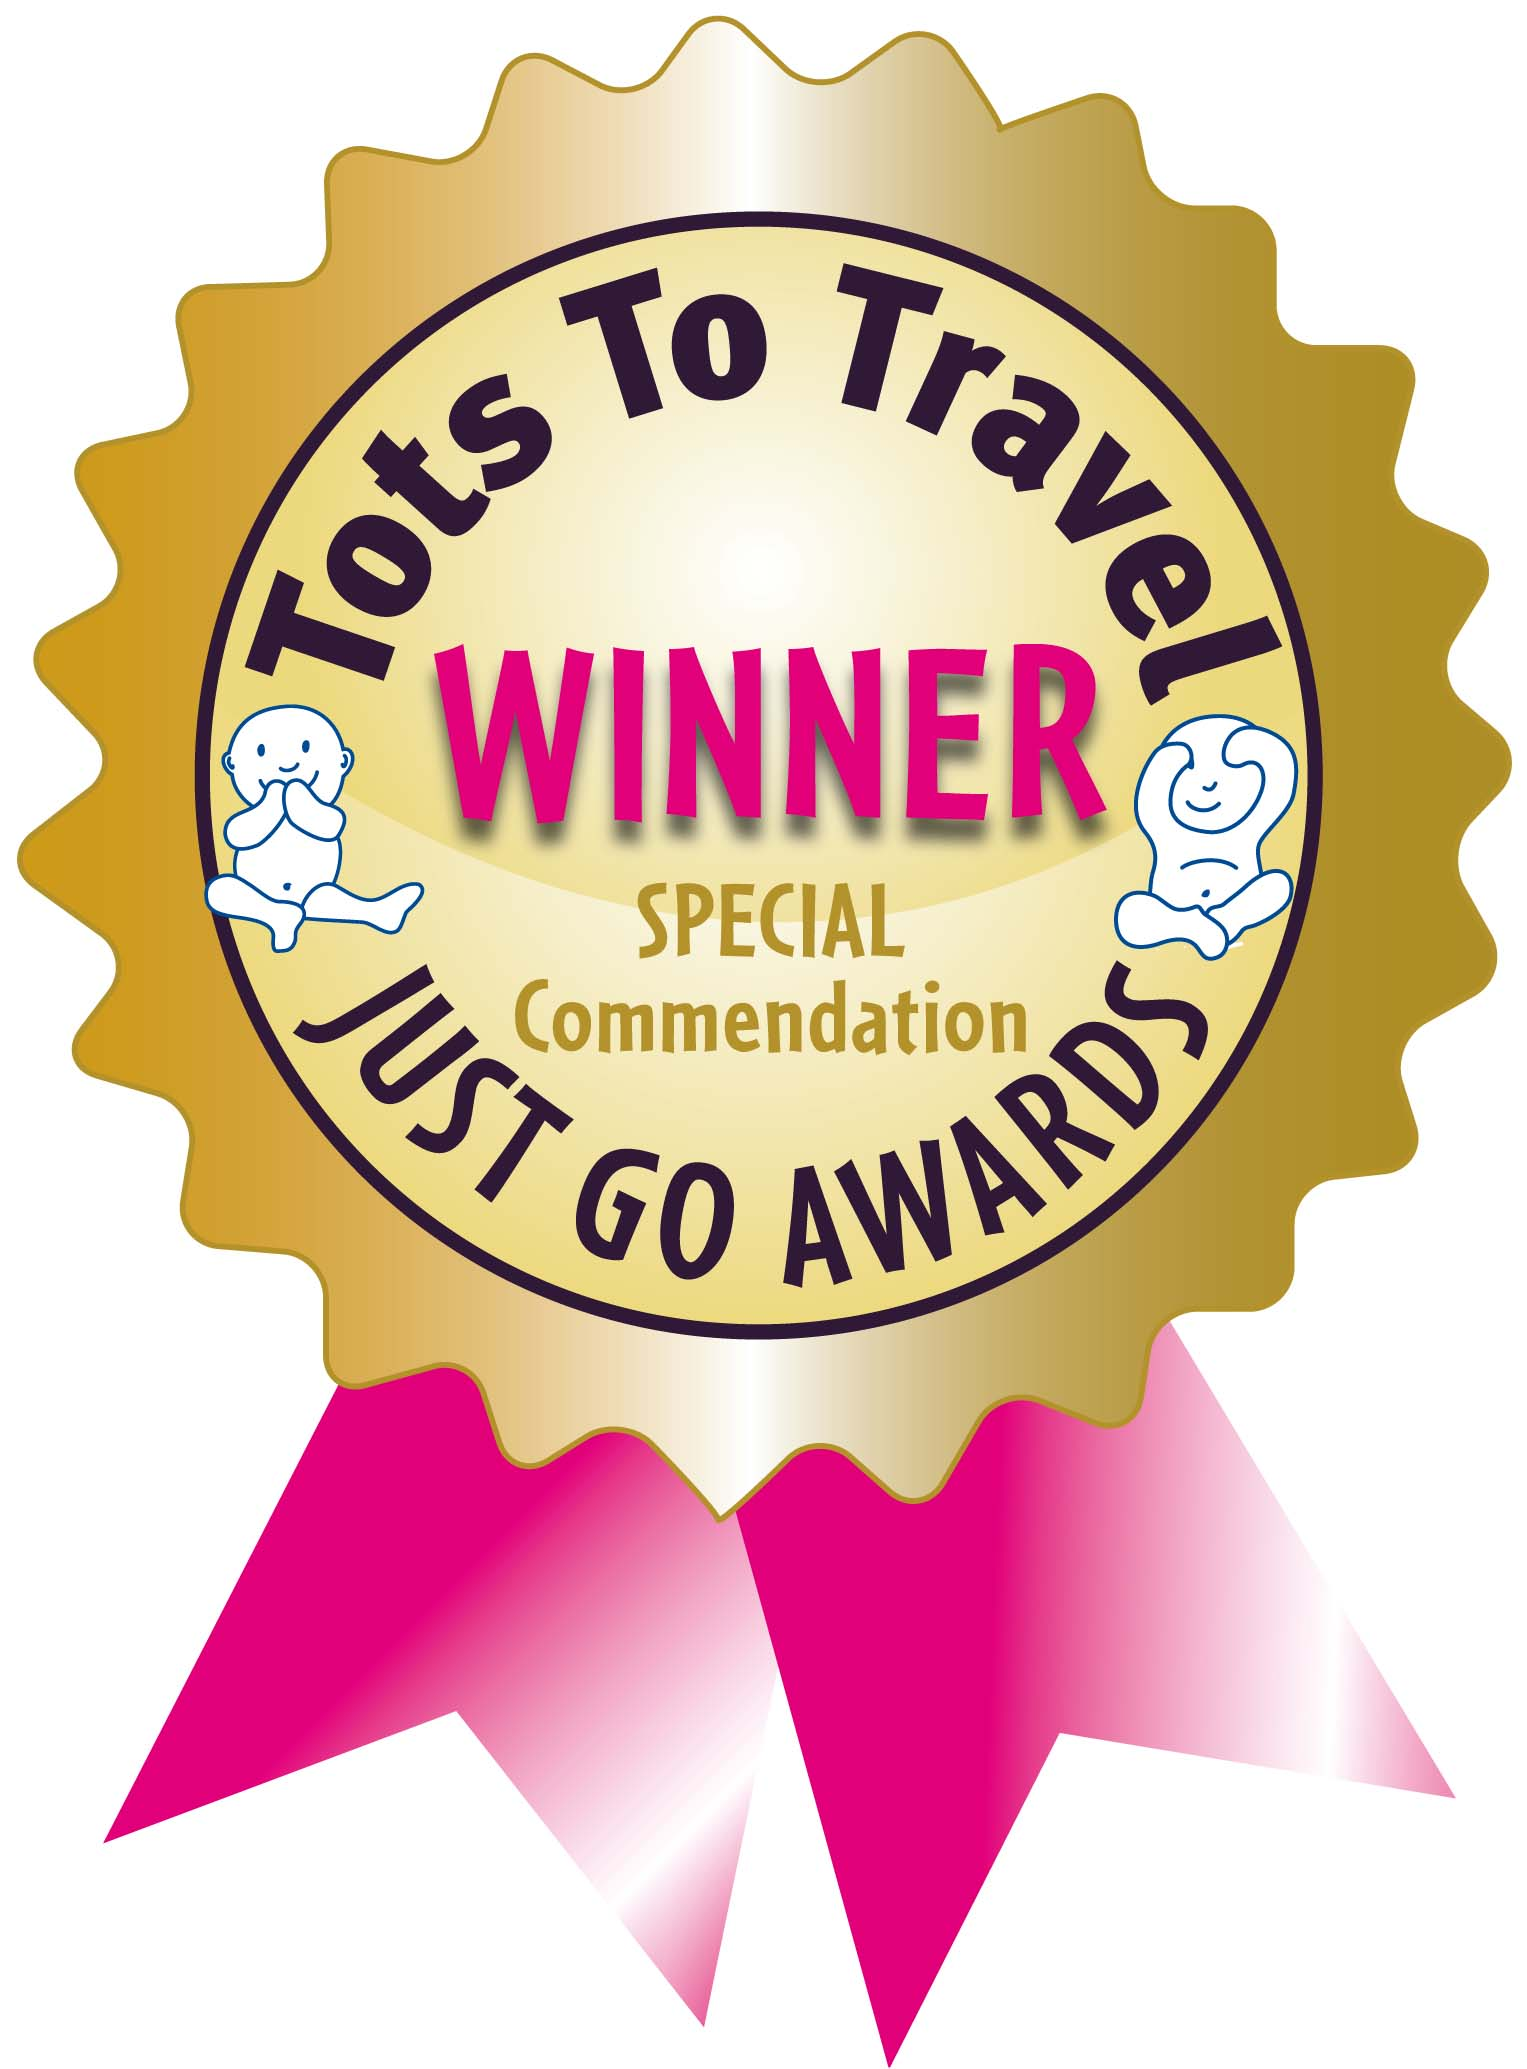 Just Go awards special commendation